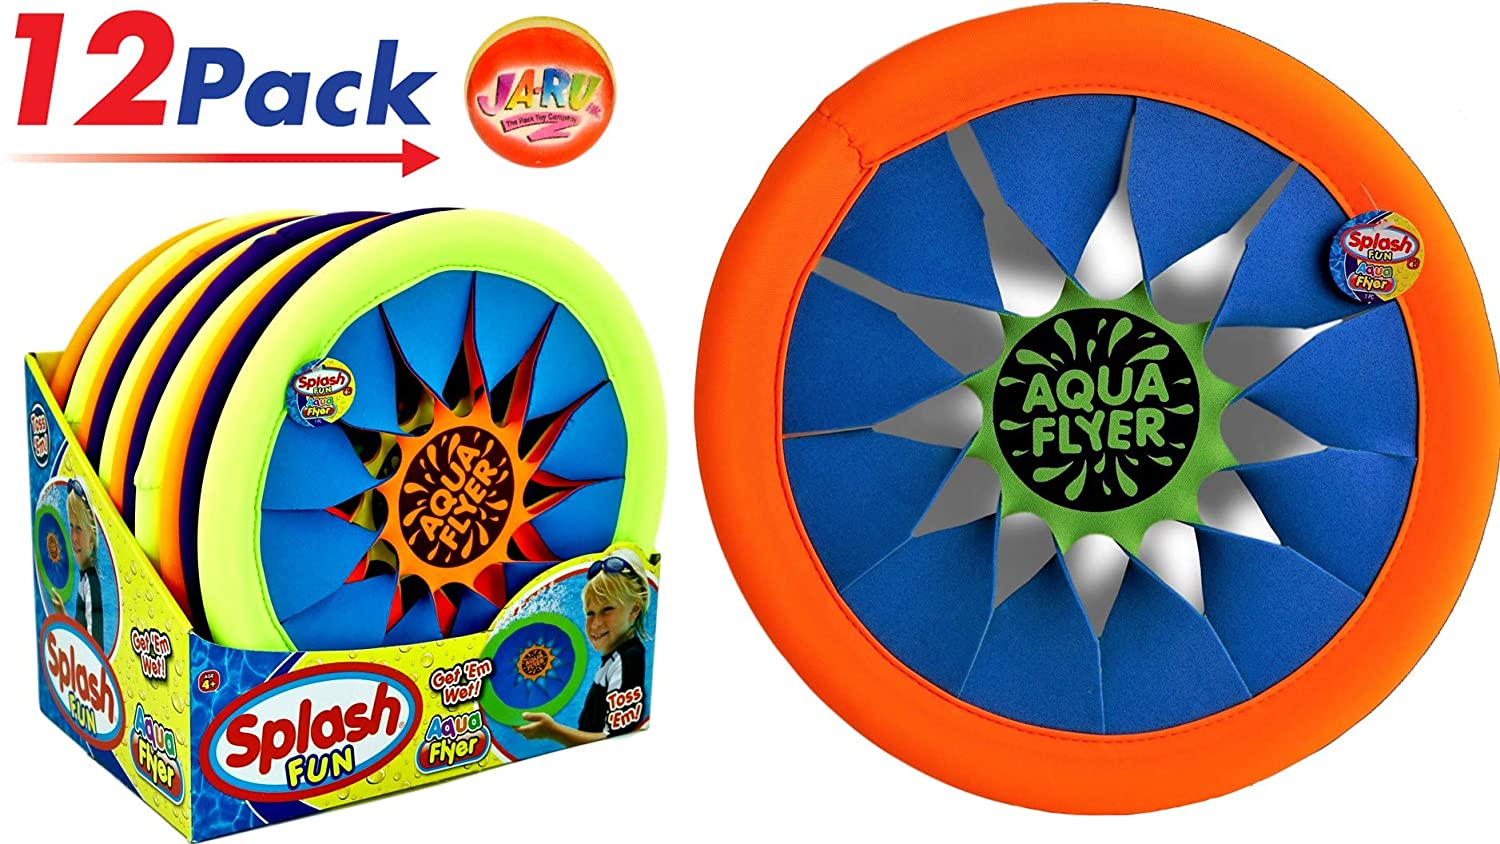 Water Frisbee Flyer by 2 goodshop |ビーチおもちゃプールSoft Flying Disc時間のビーチFun in the Sun 12個パック| Item # 1031 B0799QNYMN